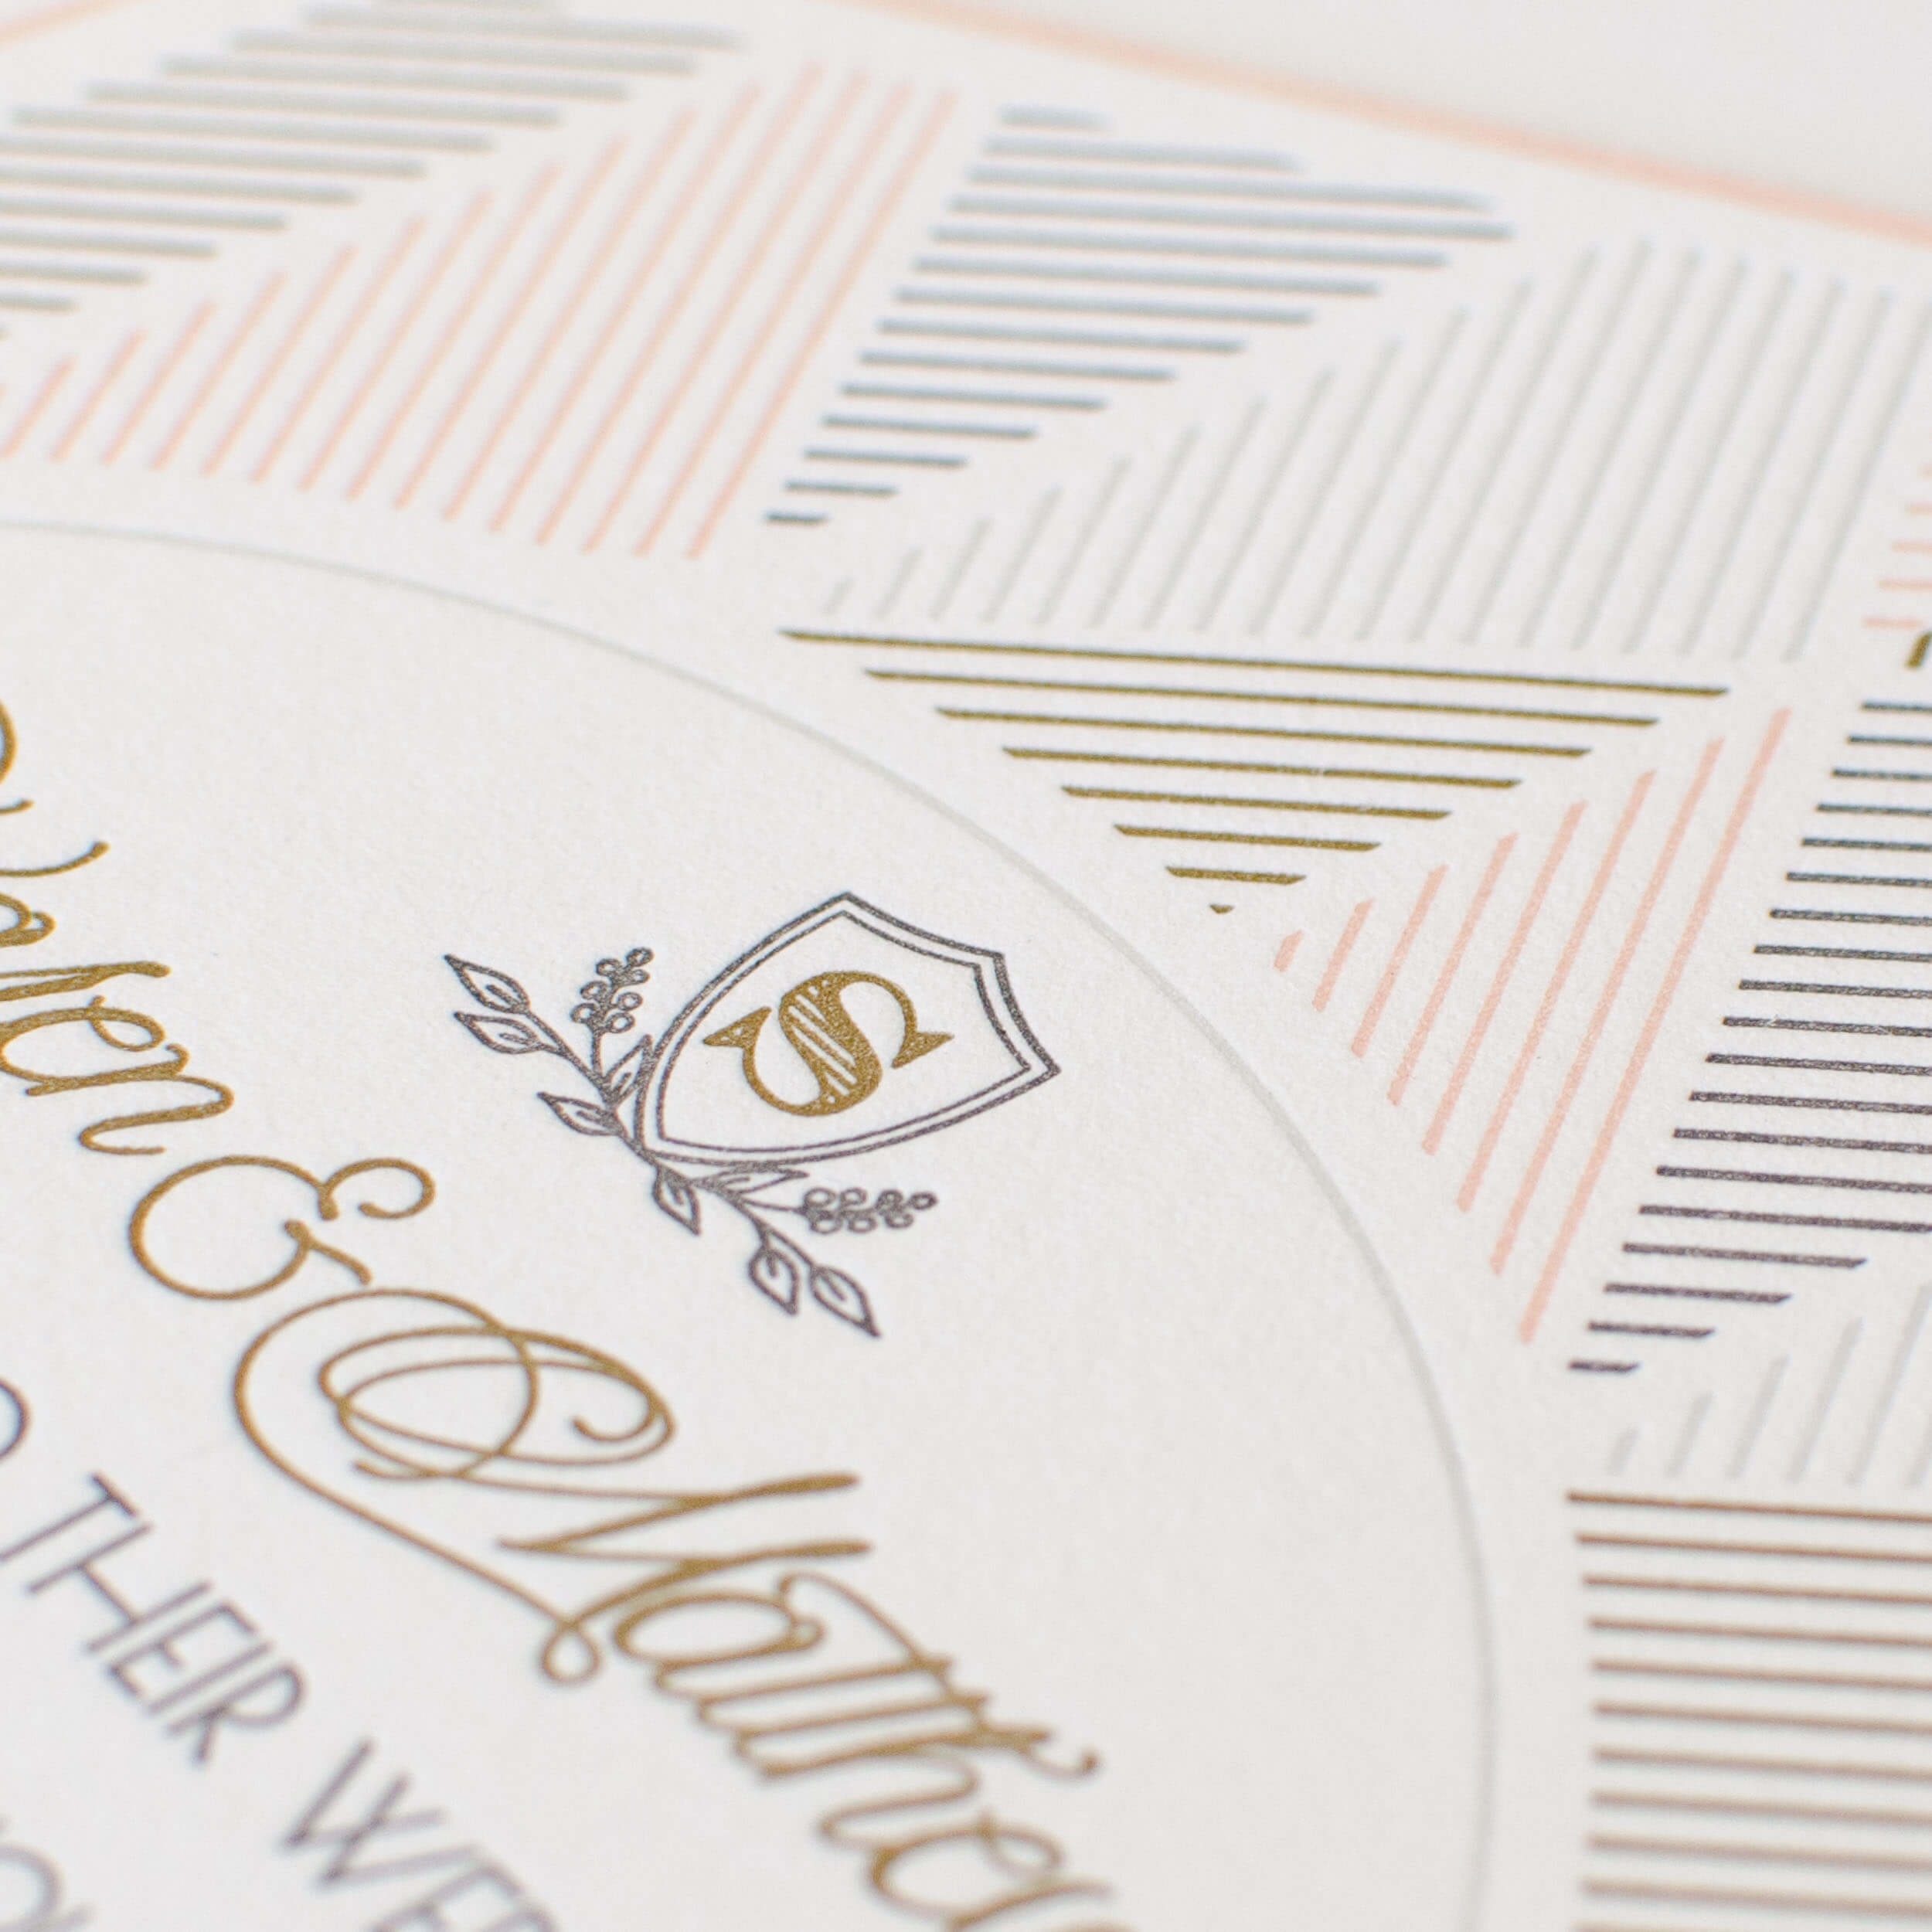 KarenMatthew_Letterpress-Wedding-Invite.jpg